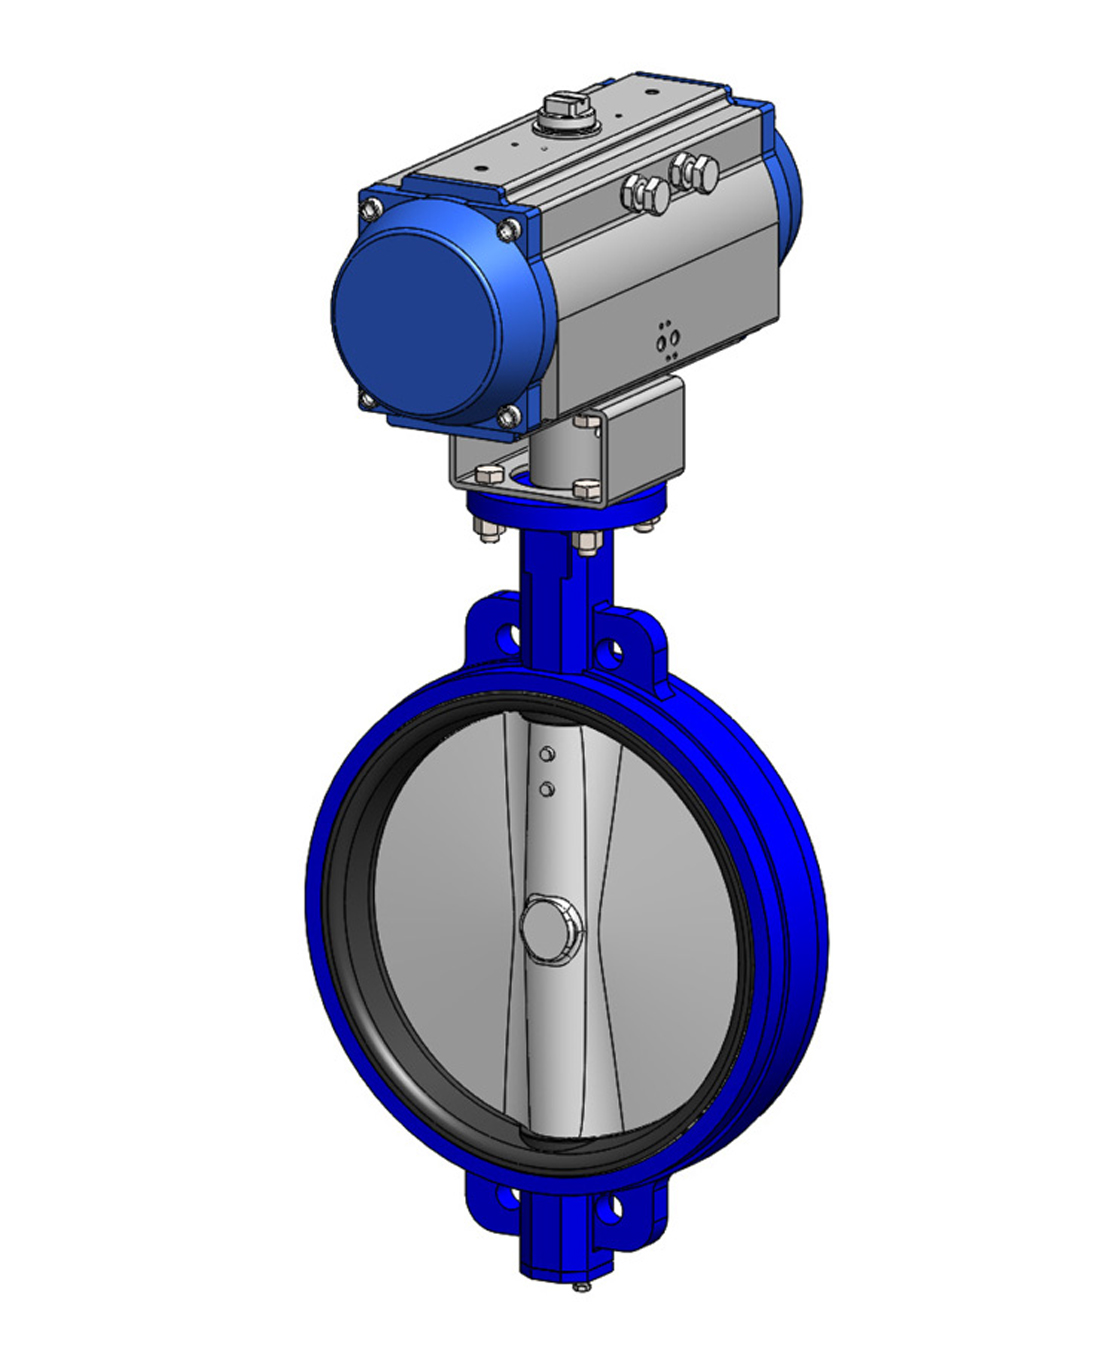 Wafer type butterfly valve PN10 – ductile iron body – stainless steel disc – double acting pneumatic operator